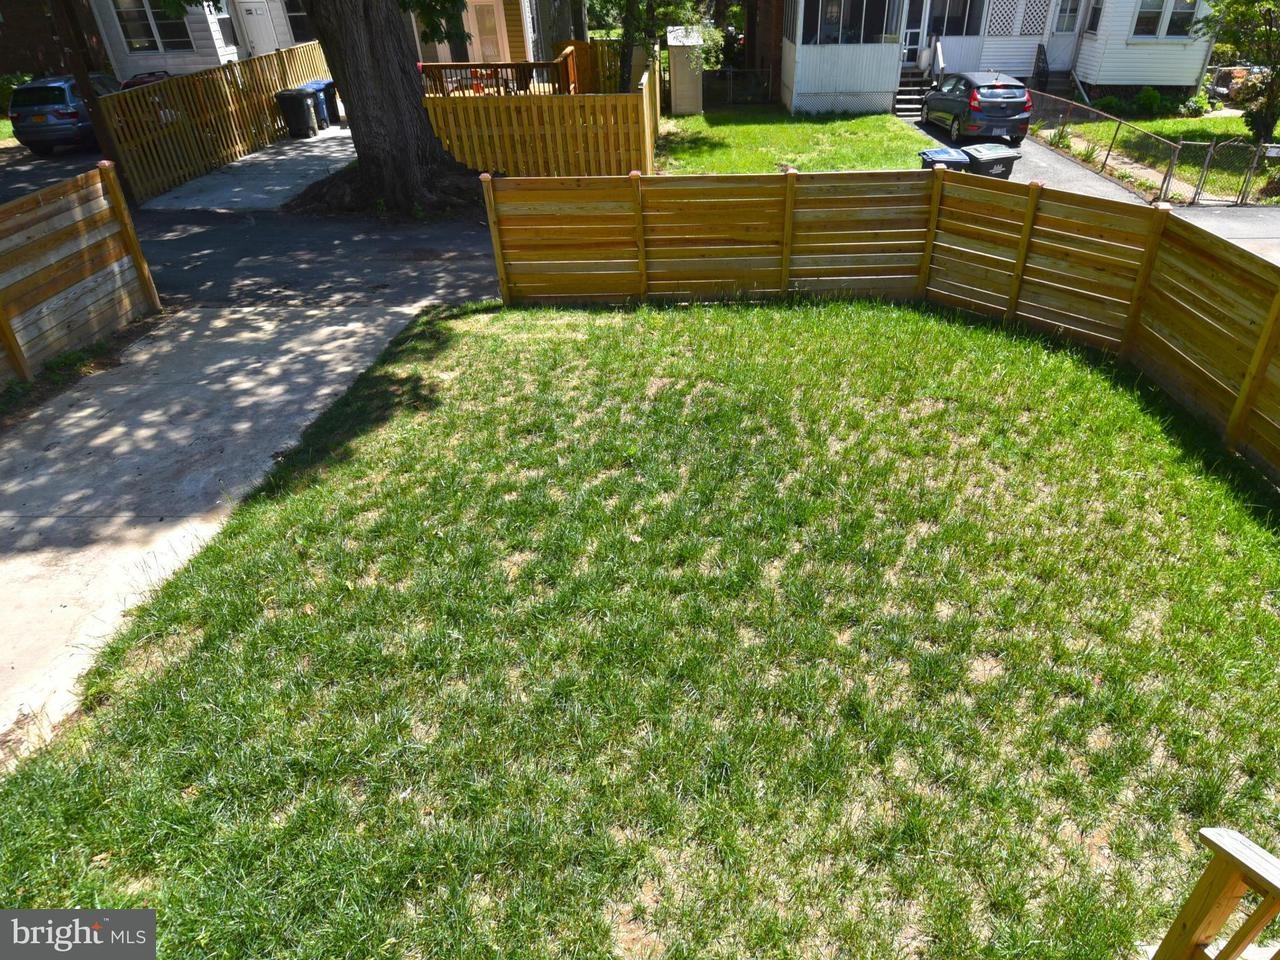 Additional photo for property listing at 4211 12TH PL NE 4211 12TH PL NE Washington, 컬럼비아주 20017 미국